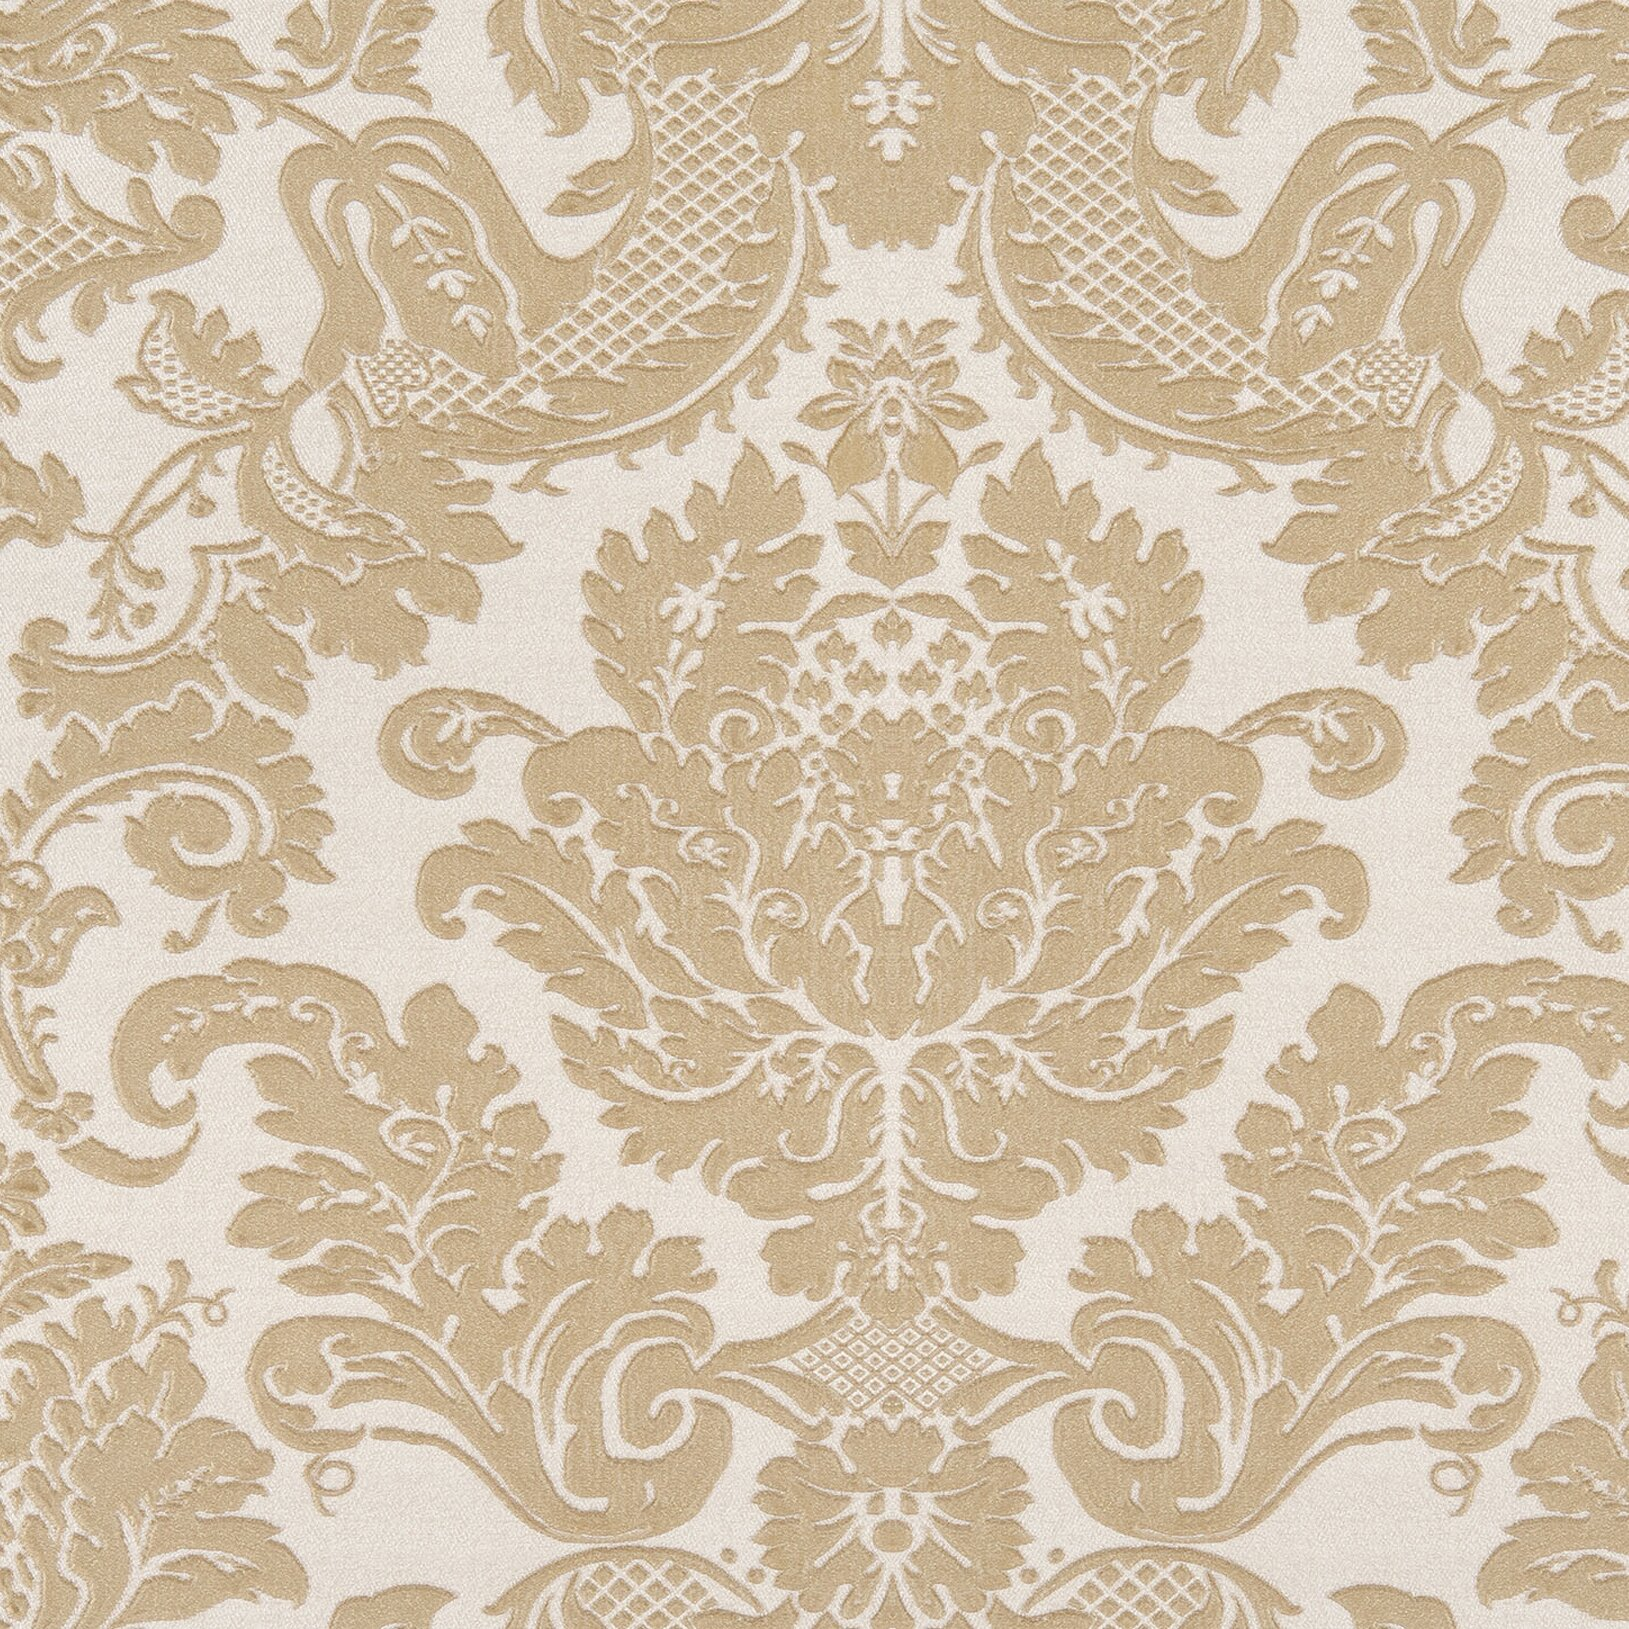 Brewster home fashions venezia agnese 33 39 x 27 damask 3d for 3d embossed wallpaper